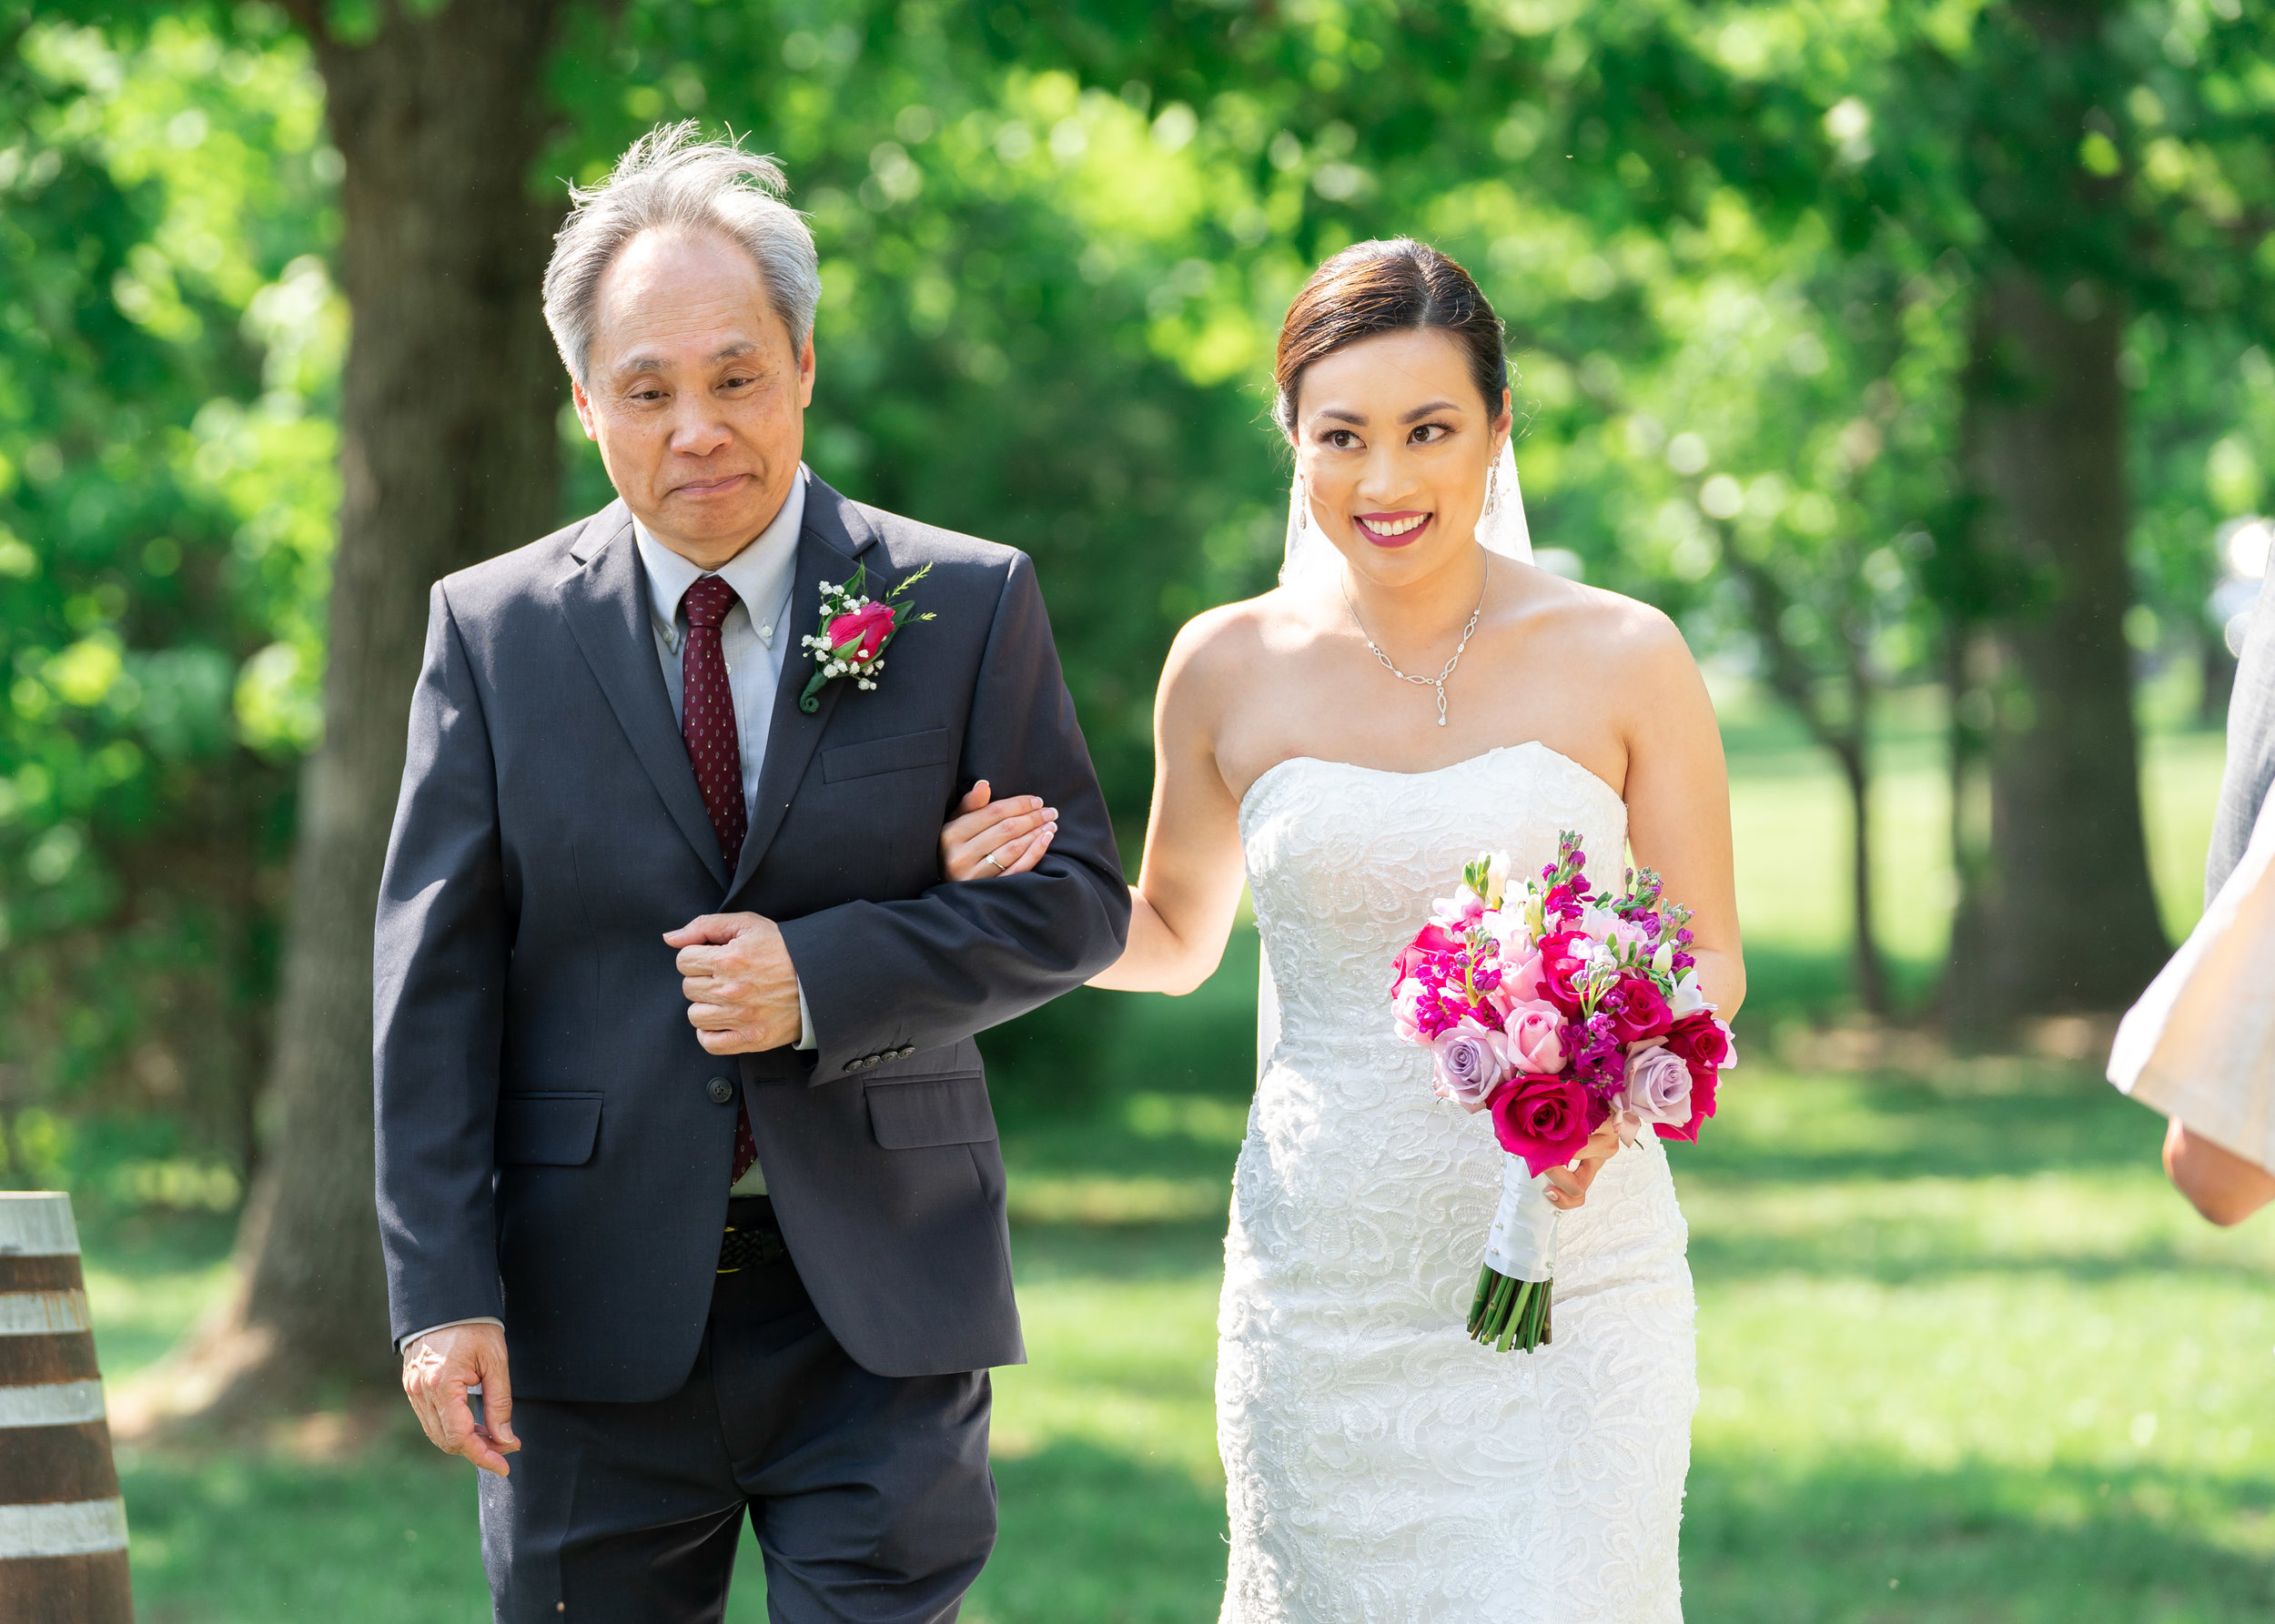 Bride and her father at Lost Creek Winery wedding in Leesburg